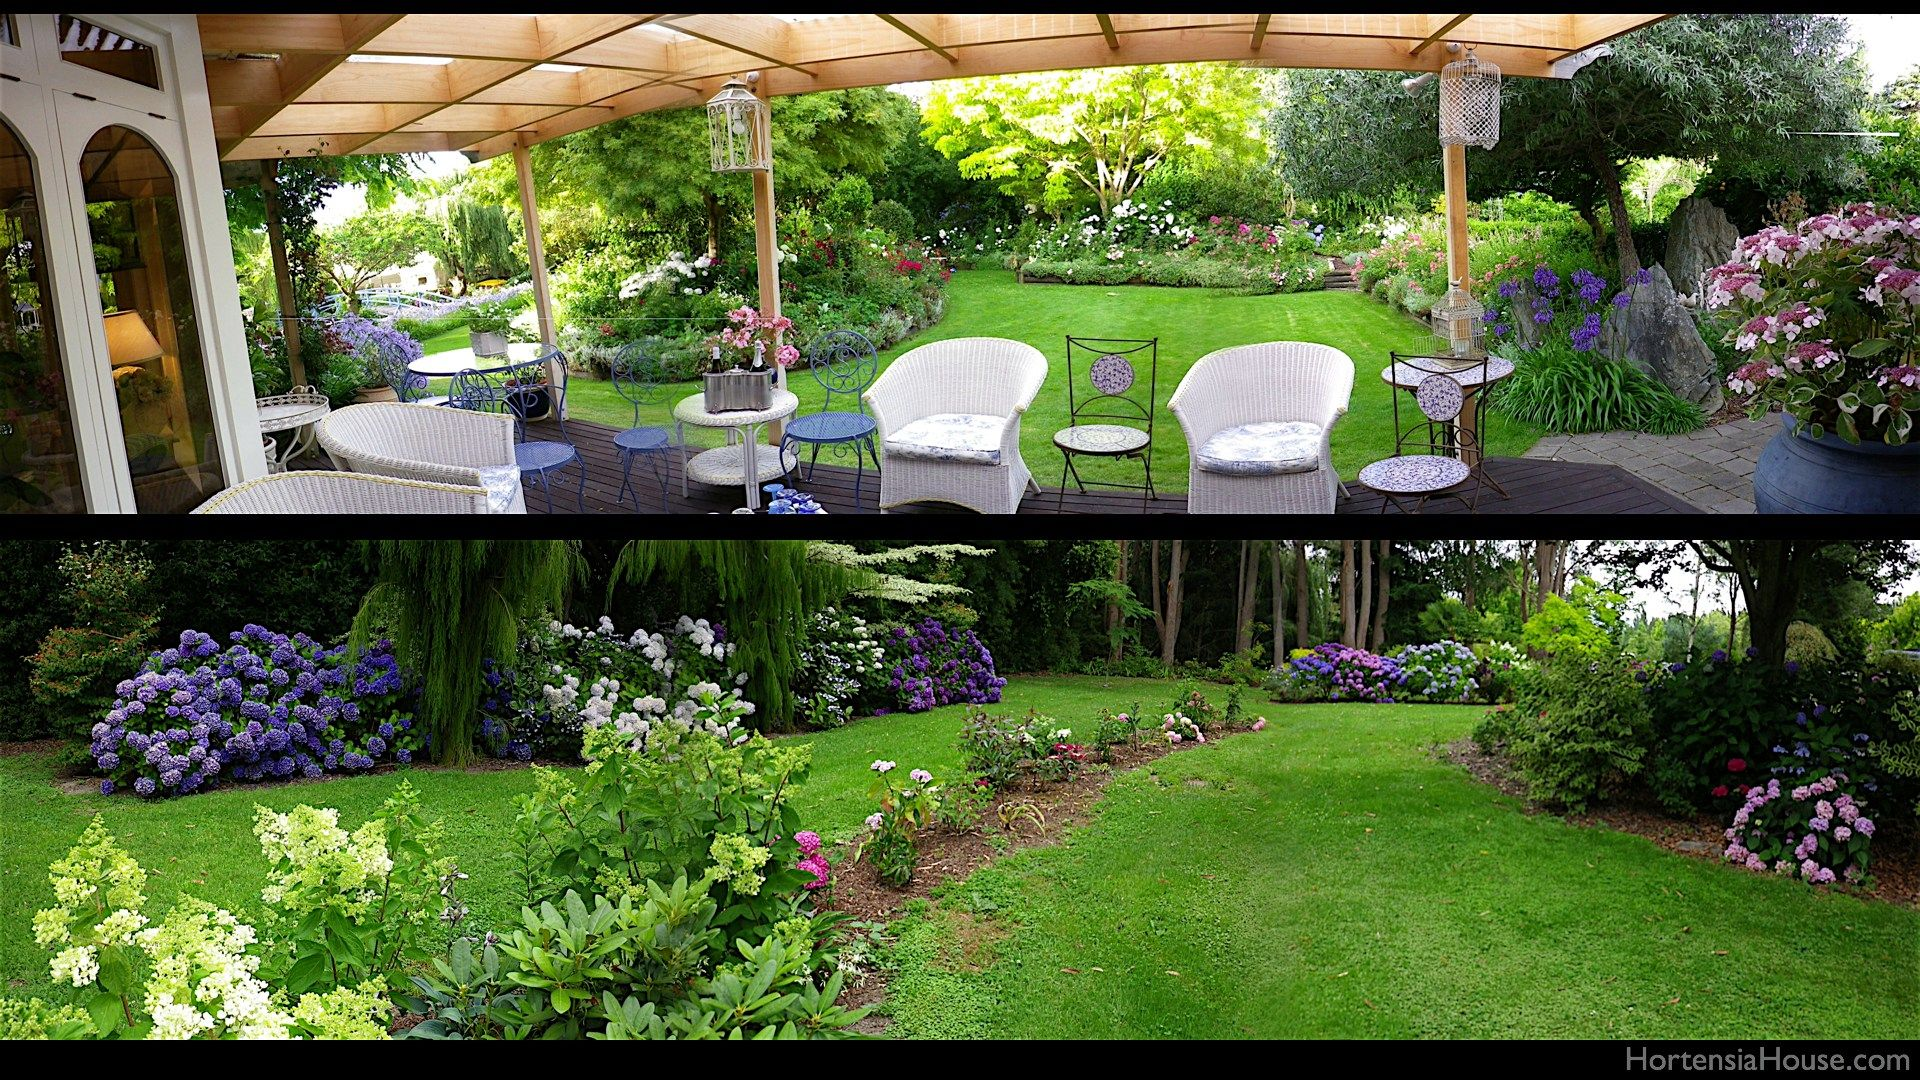 Hortensia house garden blenheim new zealand panoramas for Small home garden